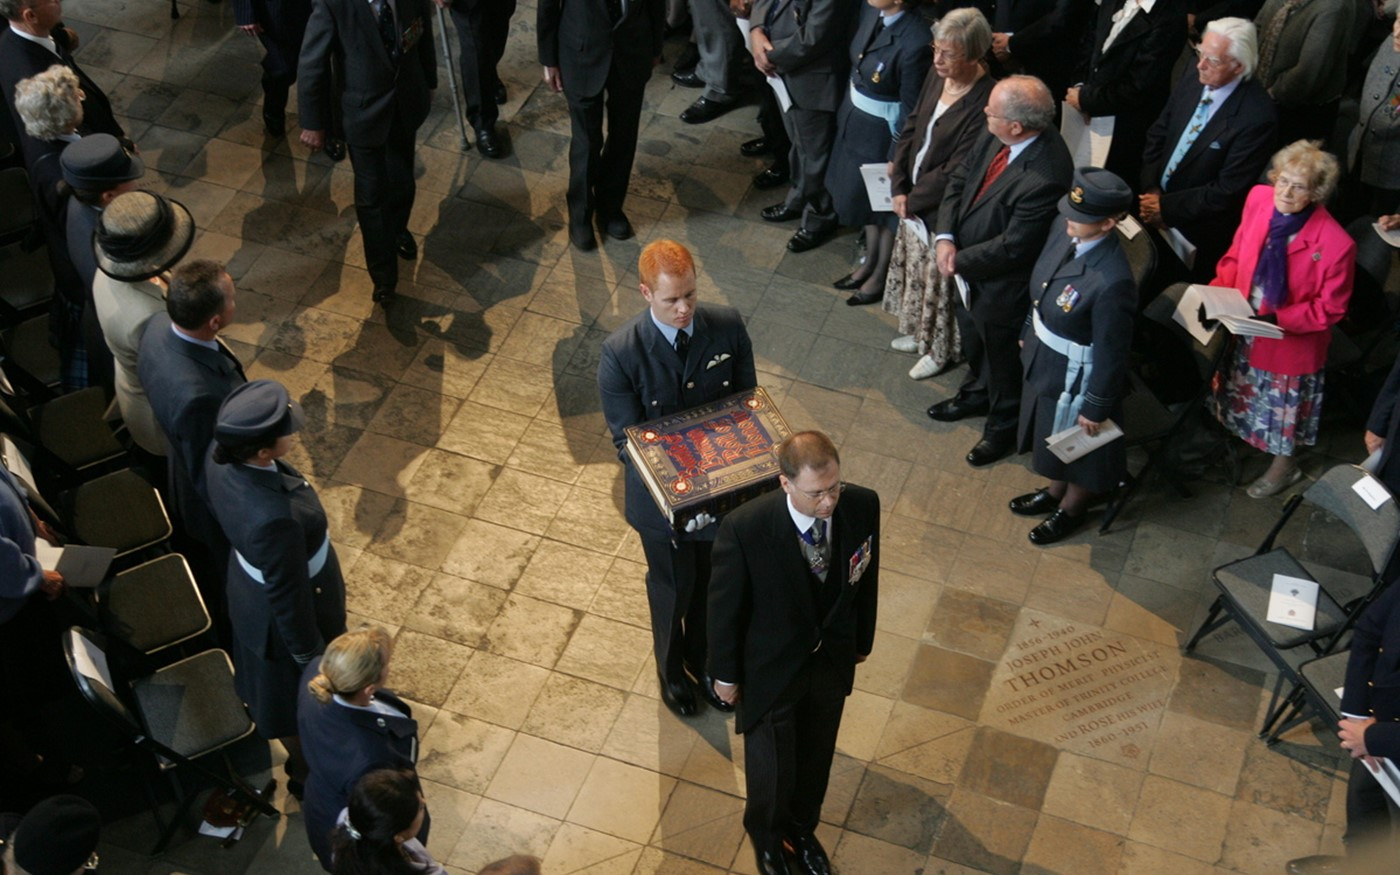 The Battle of Britain Roll of Honour is borne from the Chapel of St George to the Sacrarium, escorted by veterans of the Battle of Britain